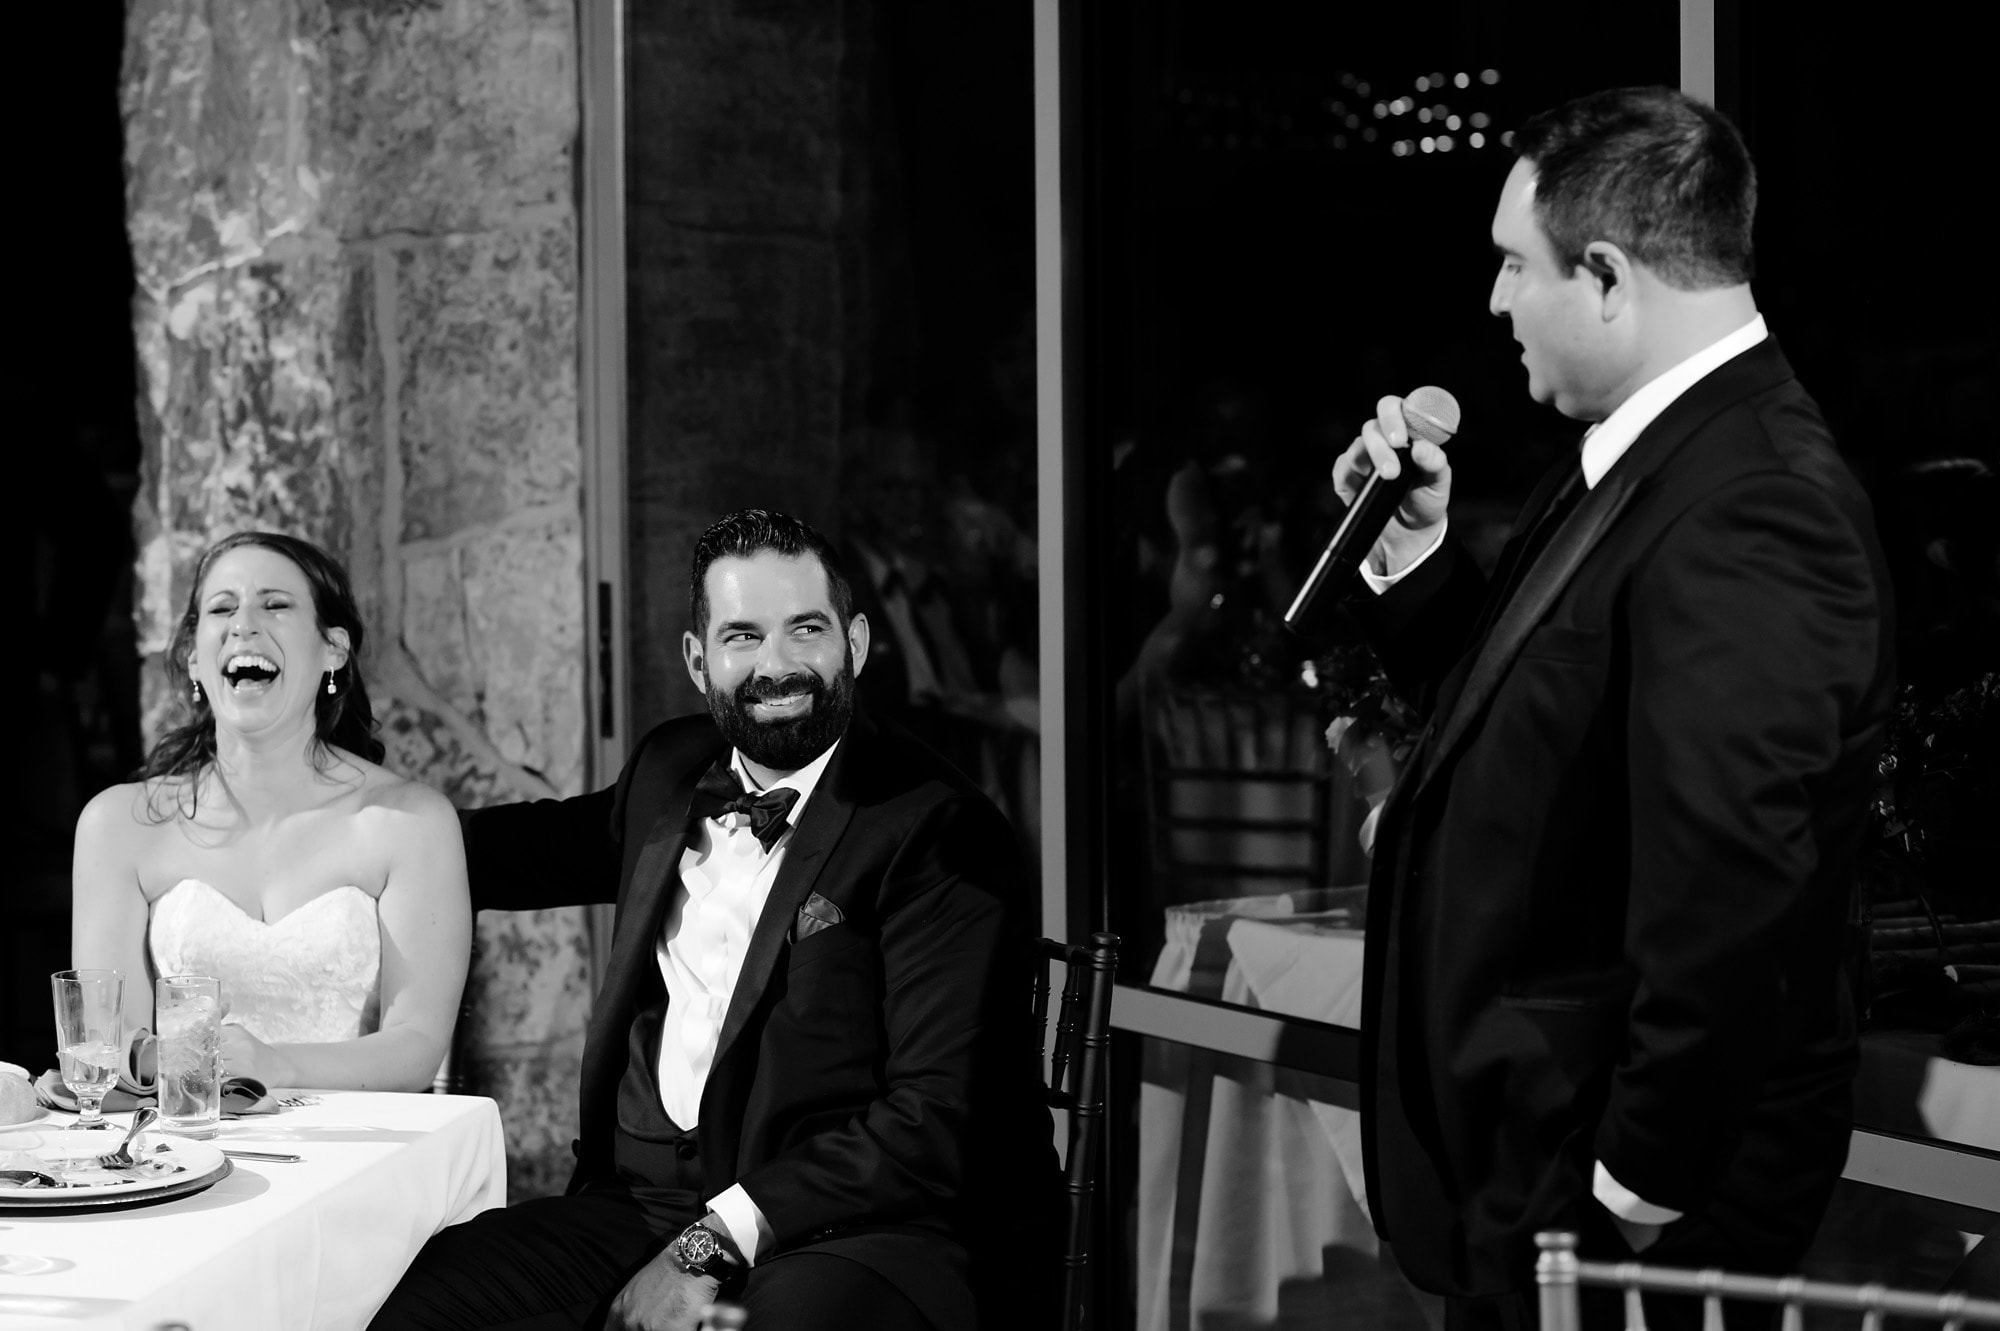 The couple laughts during a speech from the best man